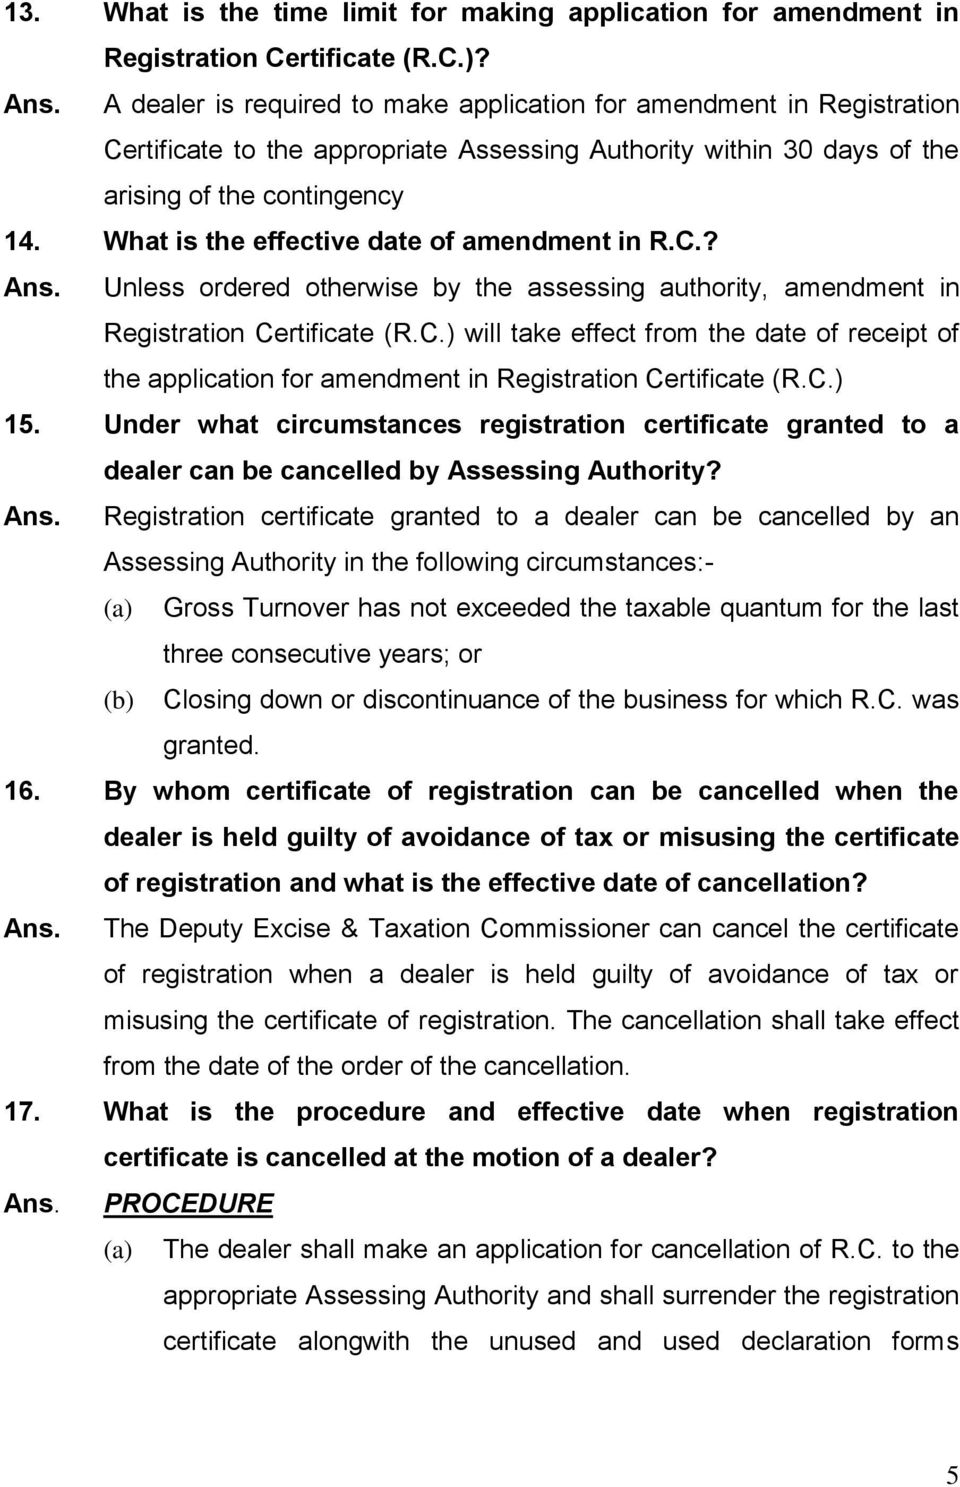 What is the effective date of amendment in R.C.? Ans. Unless ordered otherwise by the assessing authority, amendment in Registration Certificate (R.C.) will take effect from the date of receipt of the application for amendment in Registration Certificate (R.